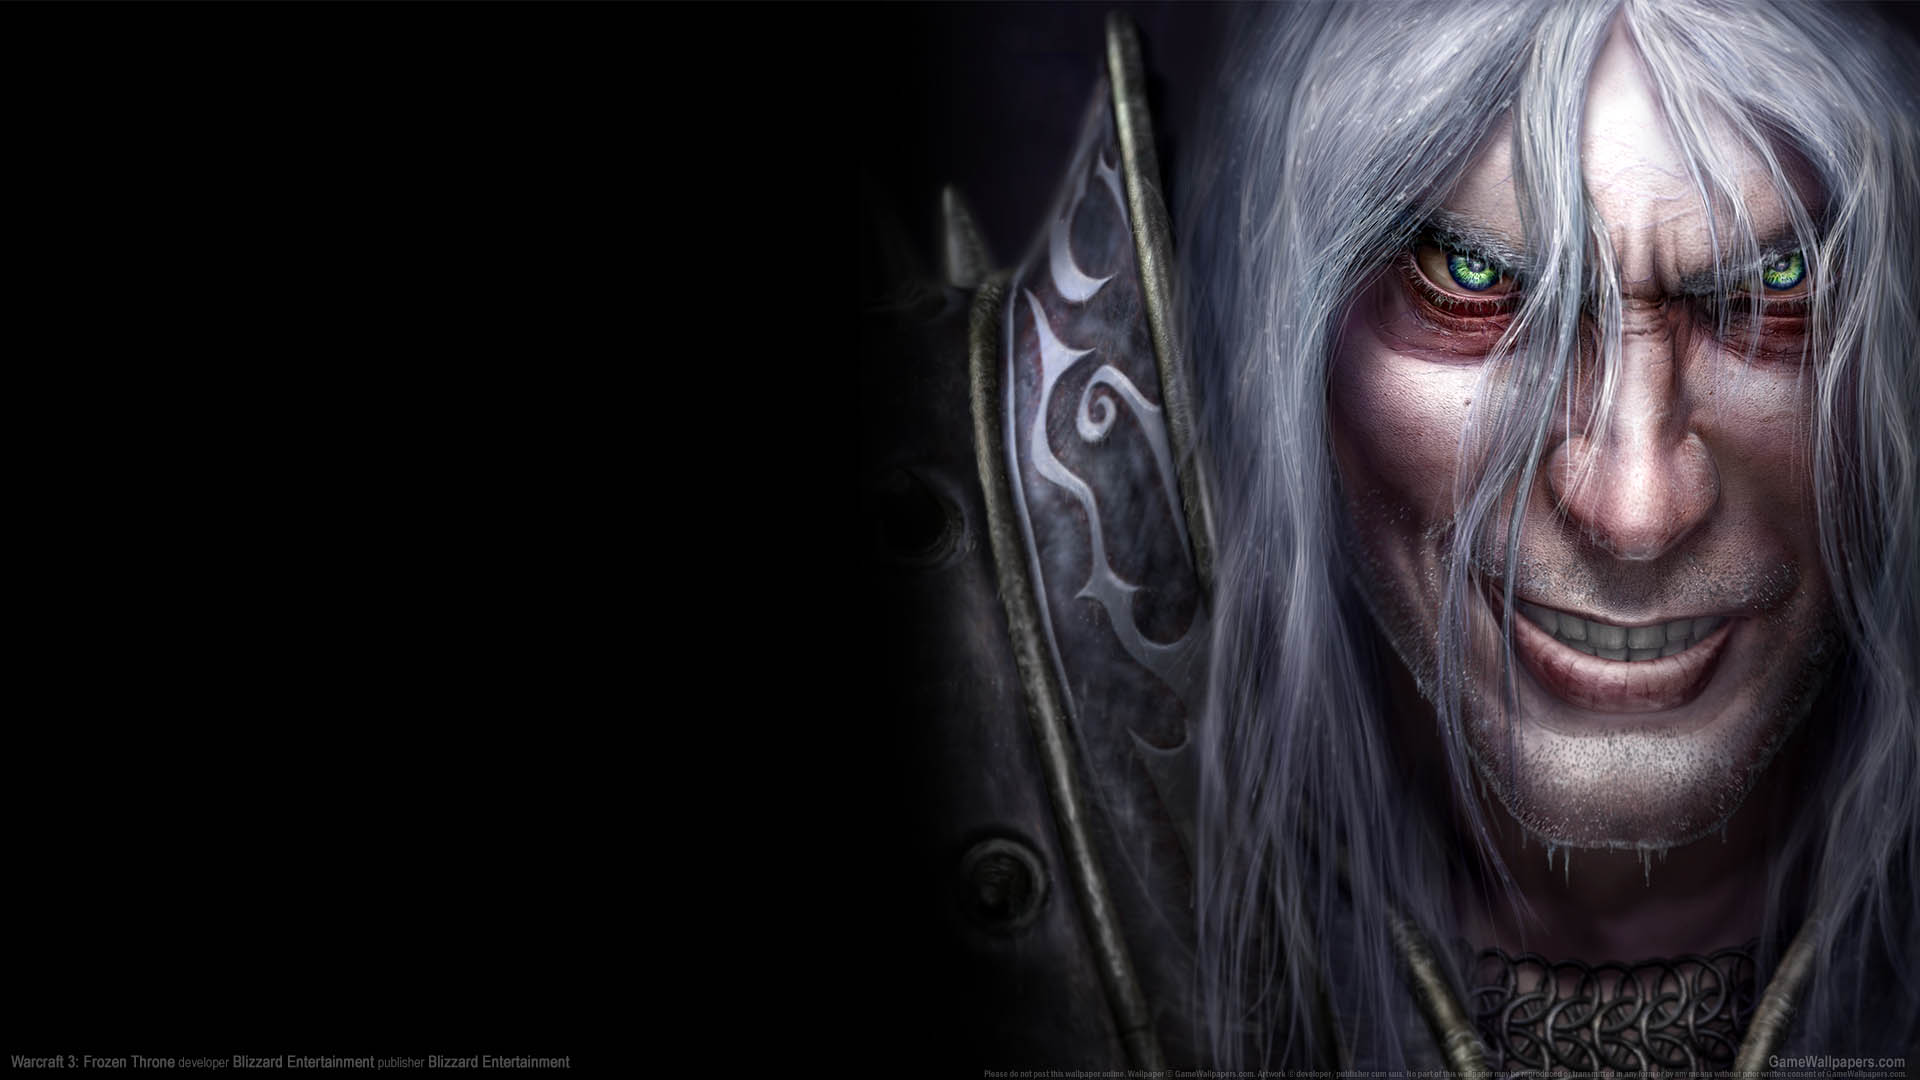 Warcraft 3: Frozen Throne Hintergrundbild 03 1920x1080